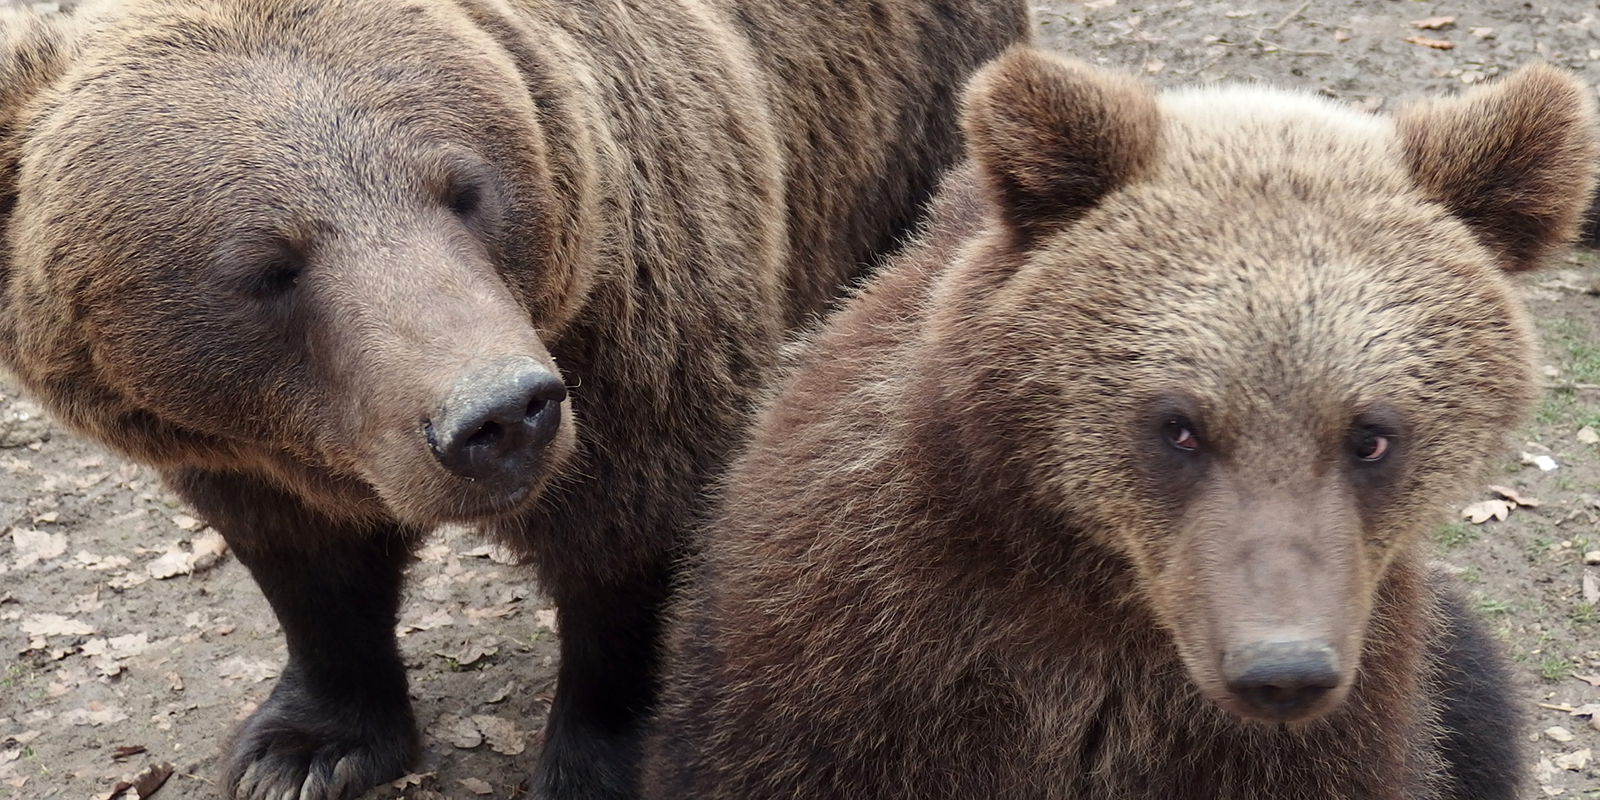 numerous brown bears in romania have been kept illegally and under miserable conditions